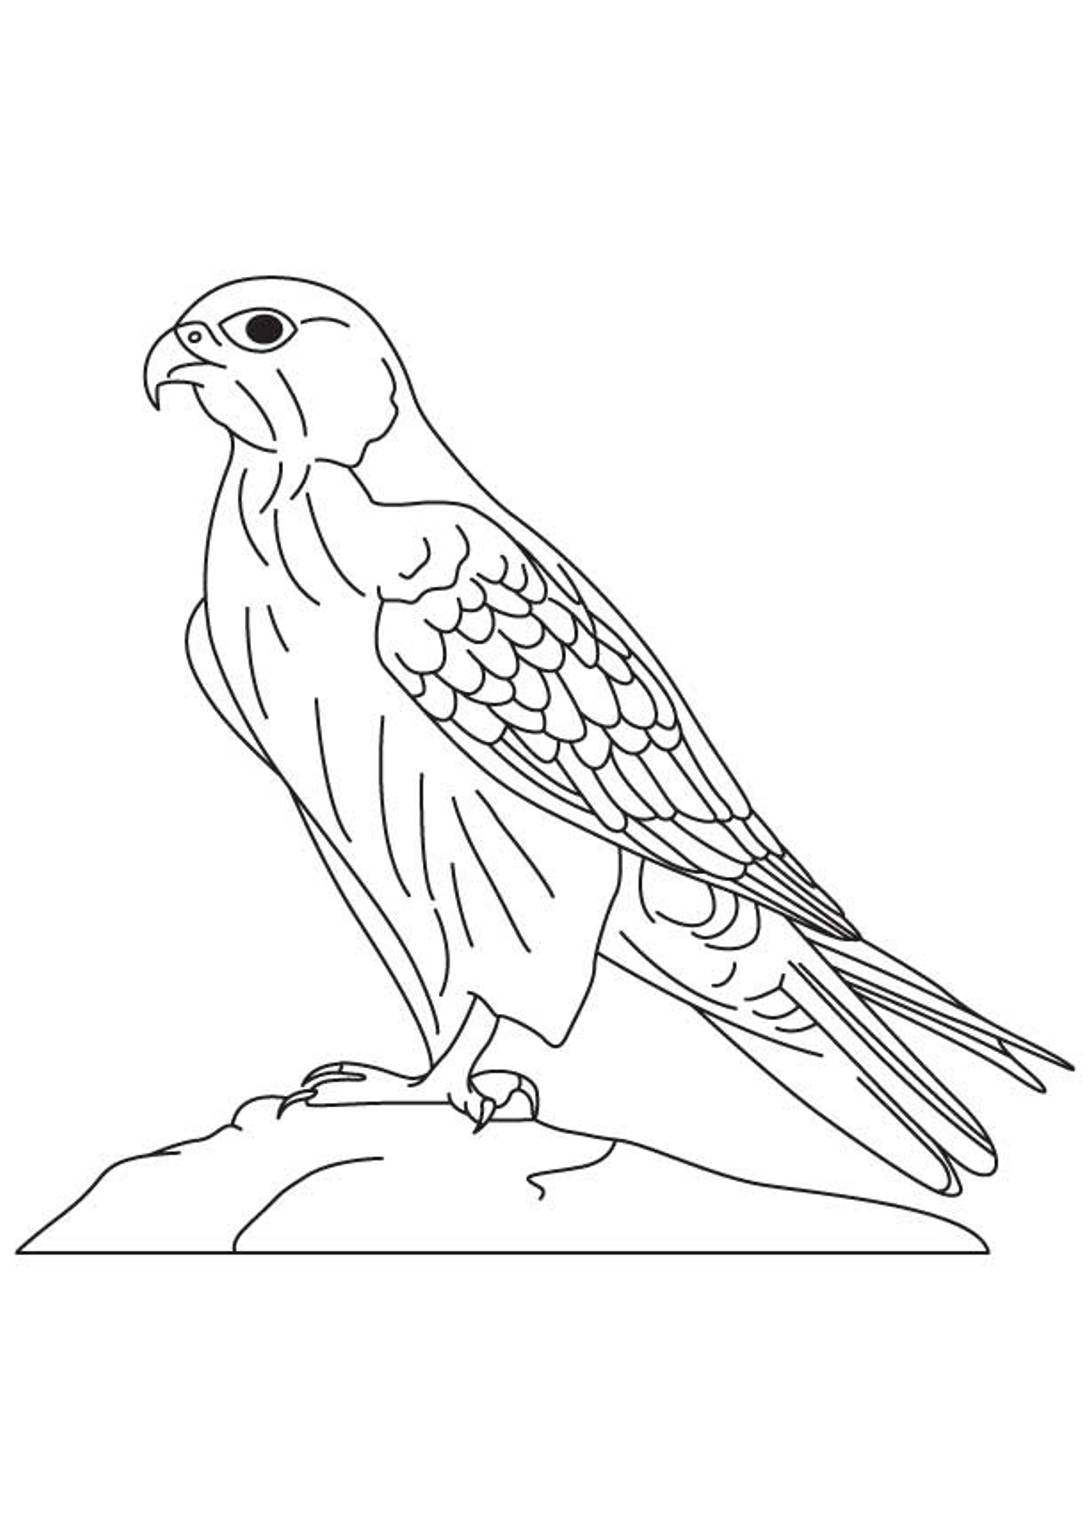 Peregrine Falcon coloring #6, Download drawings